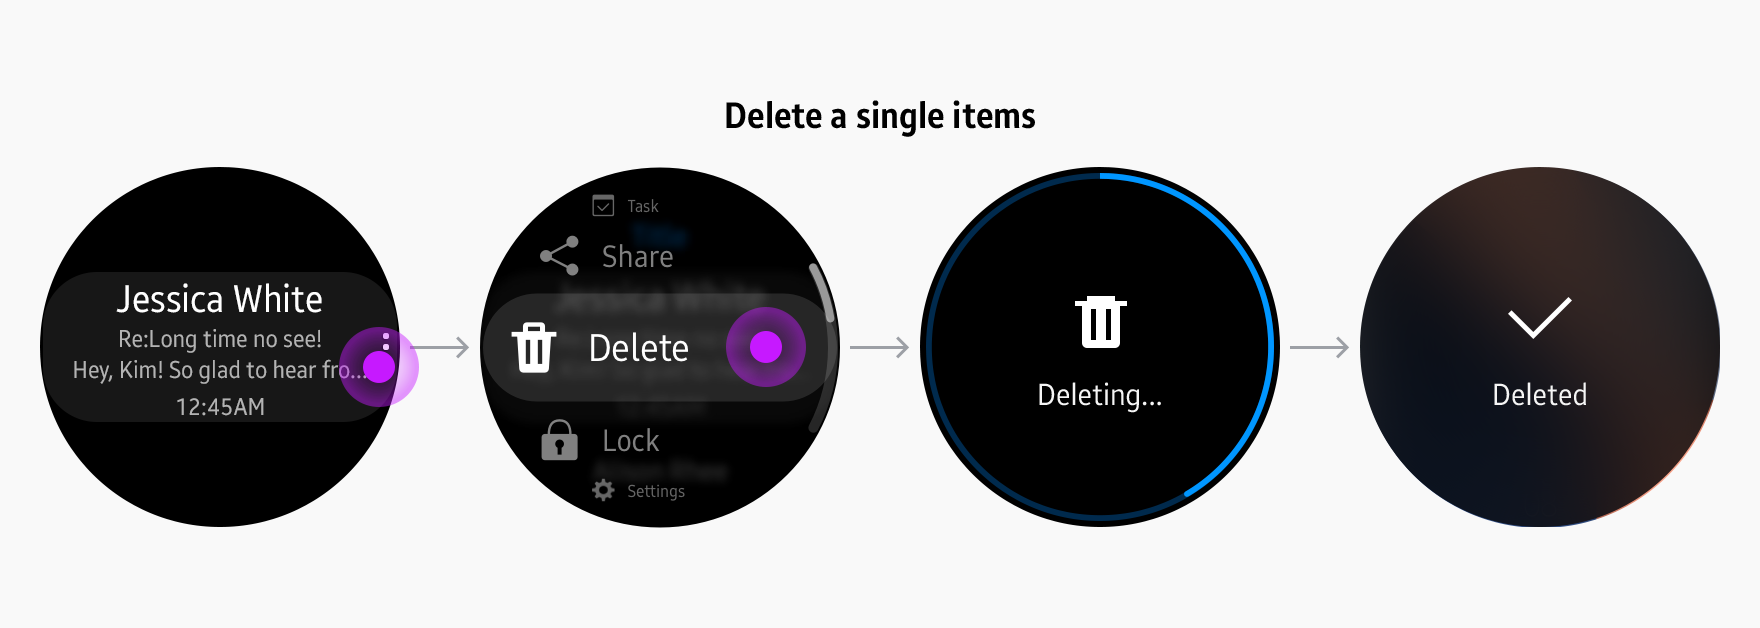 sers can access the Delete button through more options. Either multiselection or single selection is available, depending on the content.